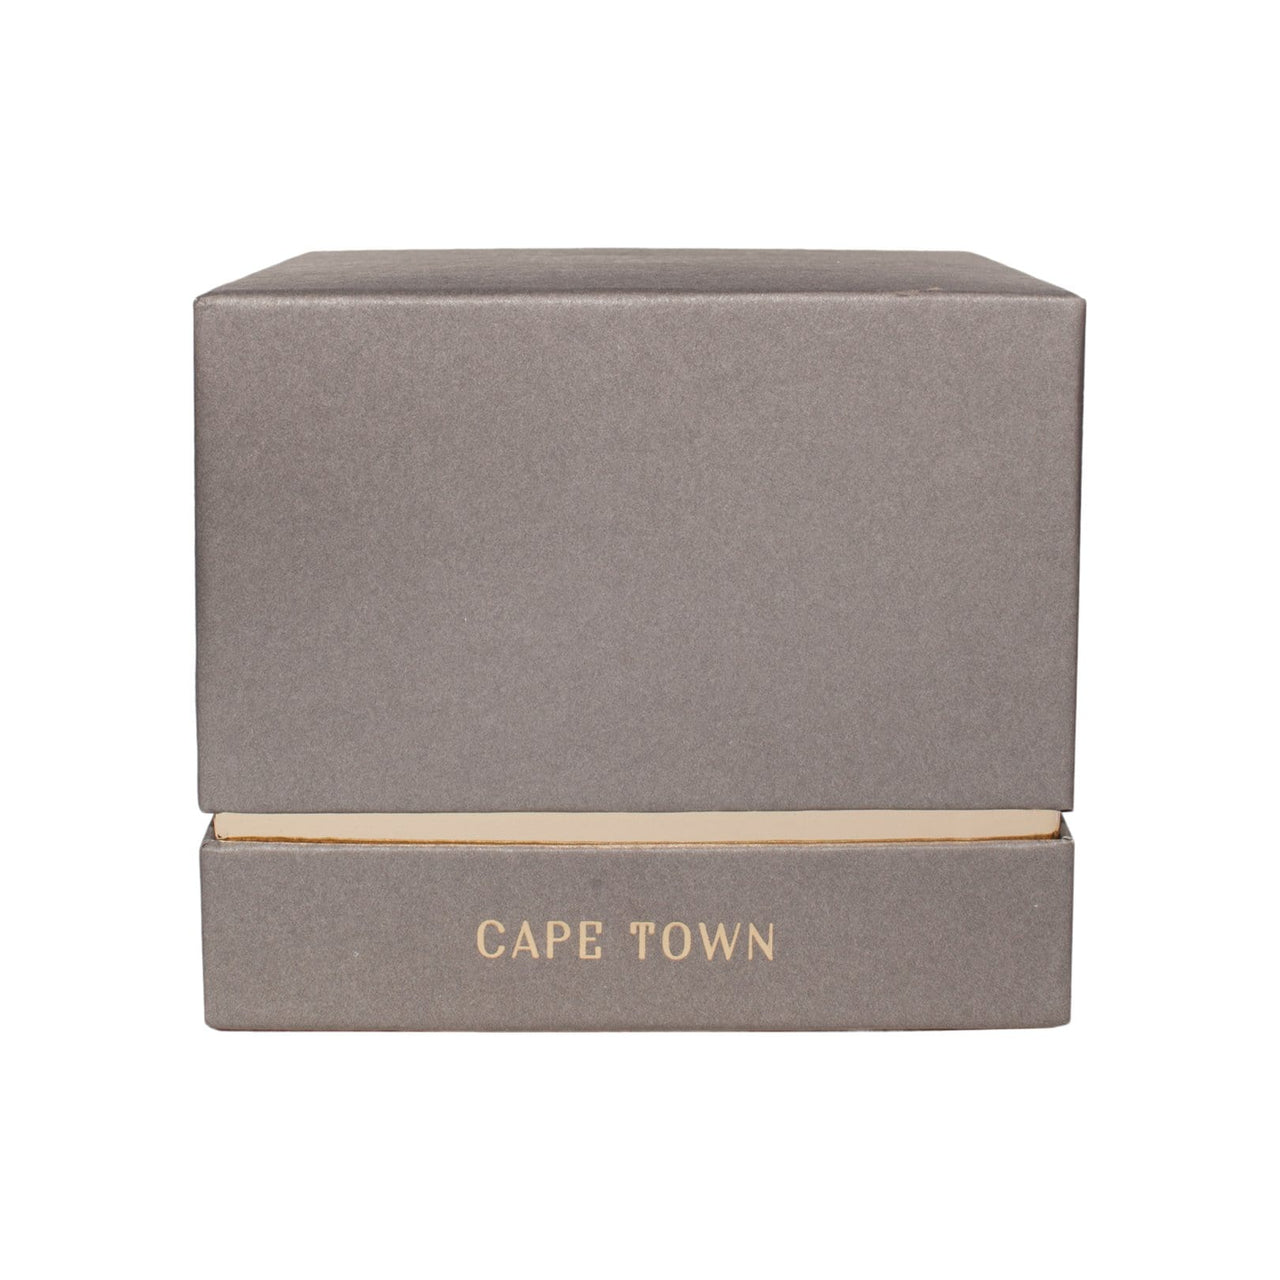 ODEME Candles & Diffusers Capetown Candle